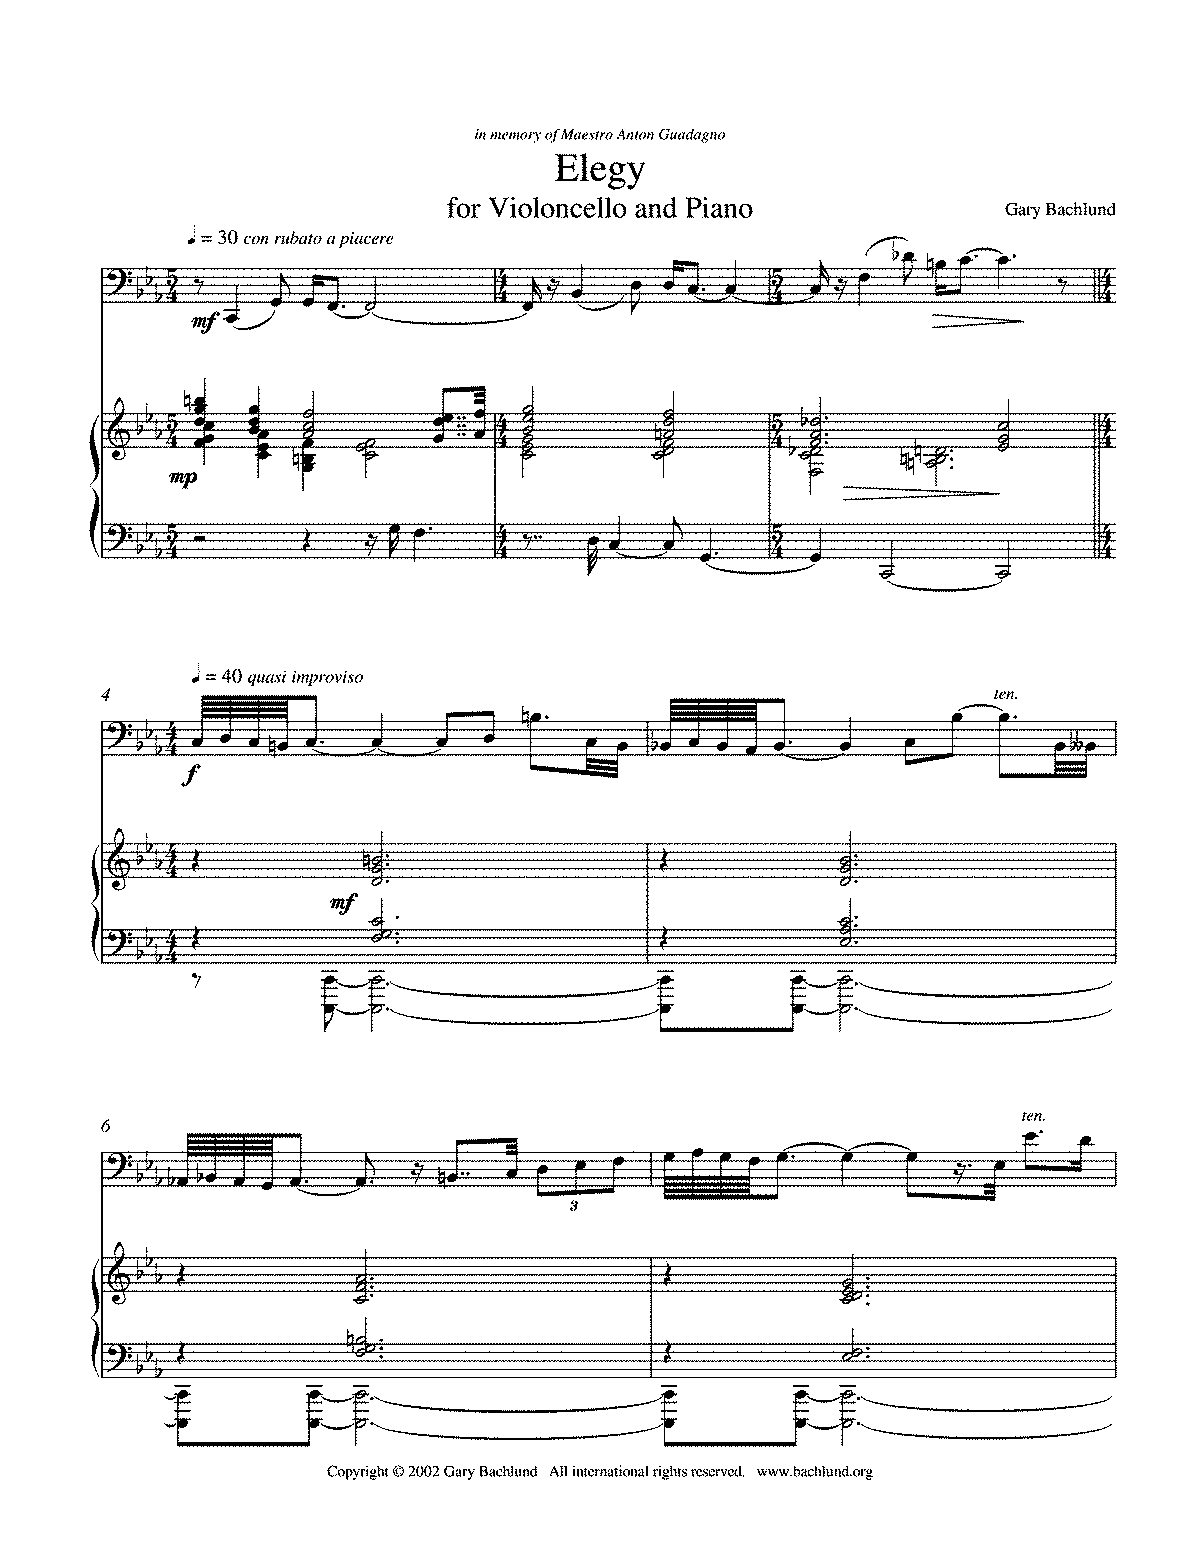 PMLP519088-Elegy for Violoncello and Piano.pdf